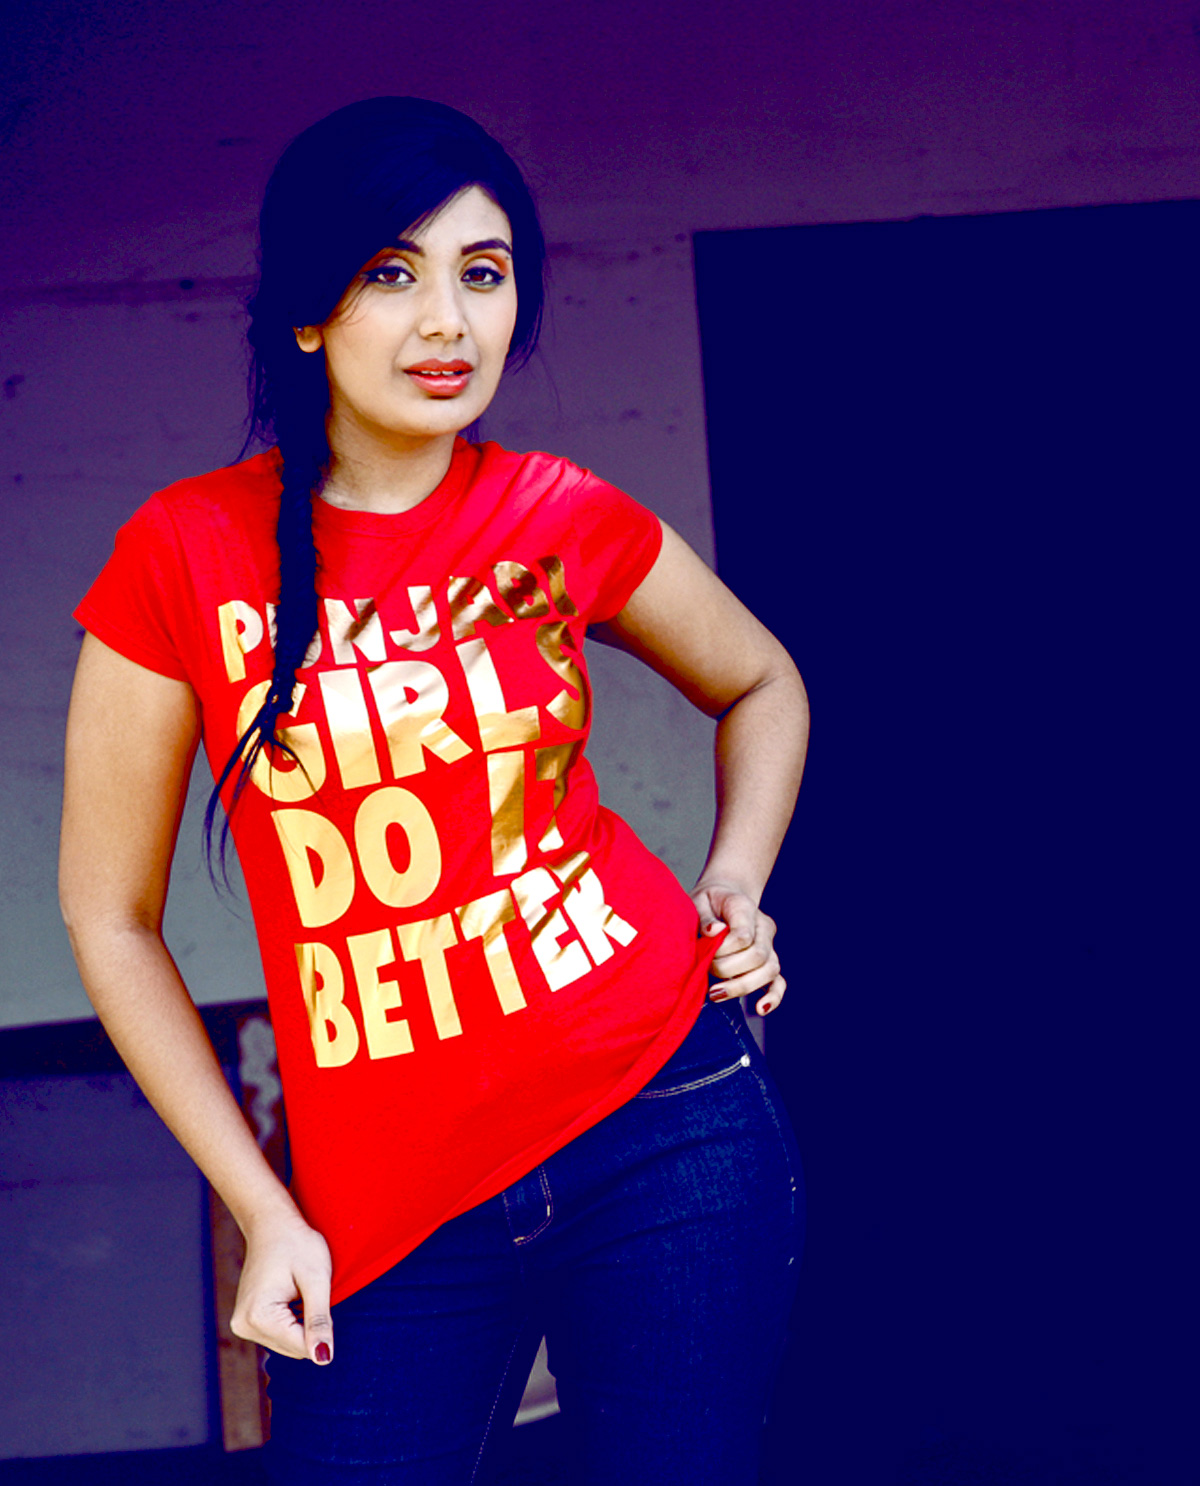 South Asian Female Model wearing Red Copper Foil Lettering T.shirt on Red Fitted shirt that says Punjabi Girls Do It Better. Graphic design t.shirts by Brown Man Clothing Co.